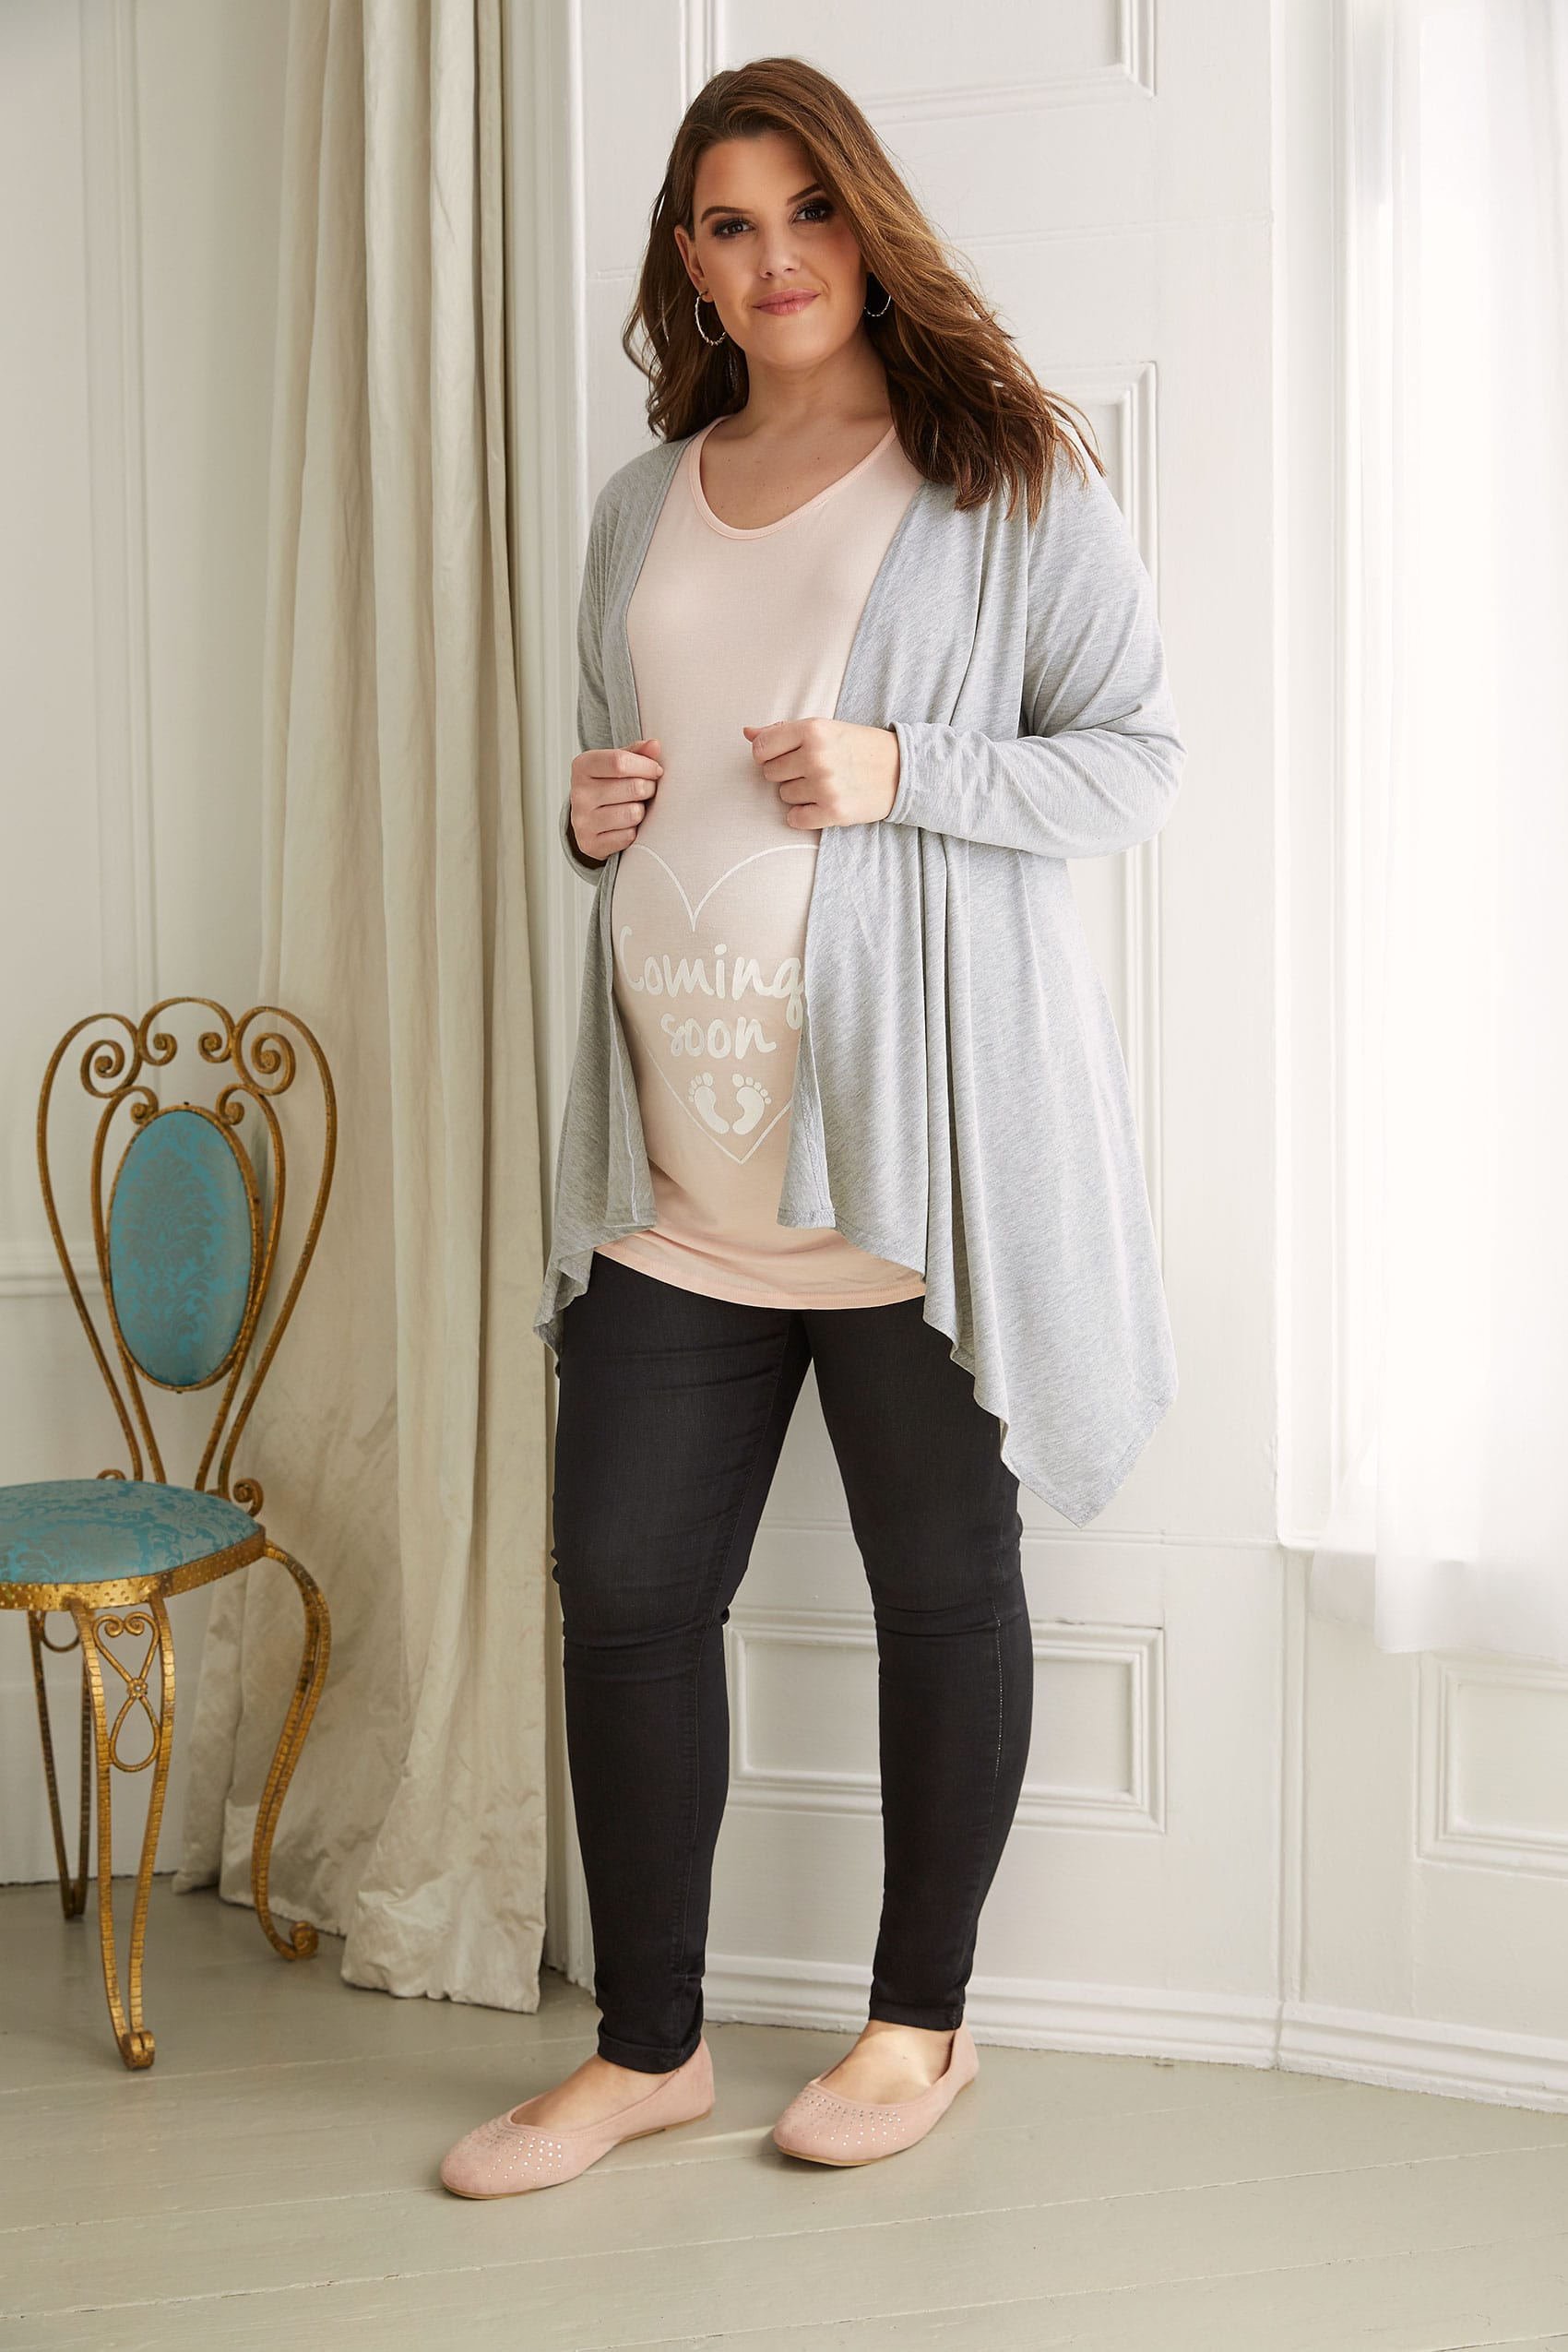 Rooms: BUMP IT UP MATERNITY Grey Waterfall Cardigan Plus Size 16